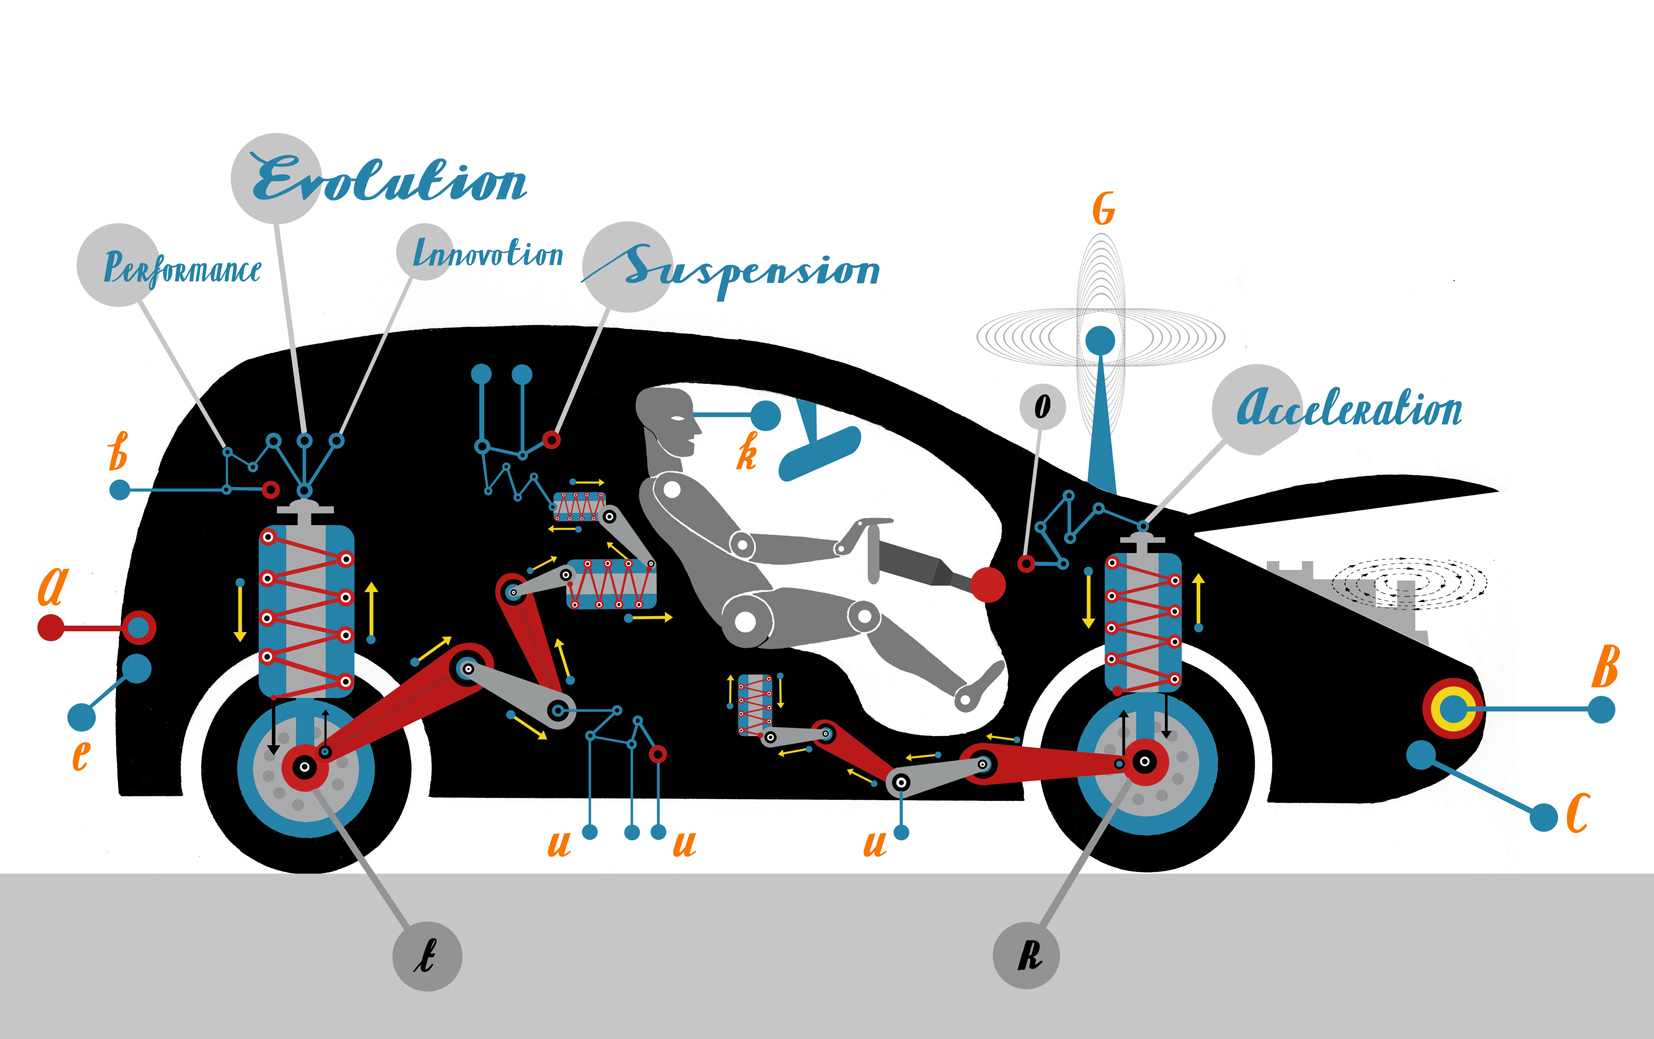 Cobb Car Evolution Suspension Acceleration